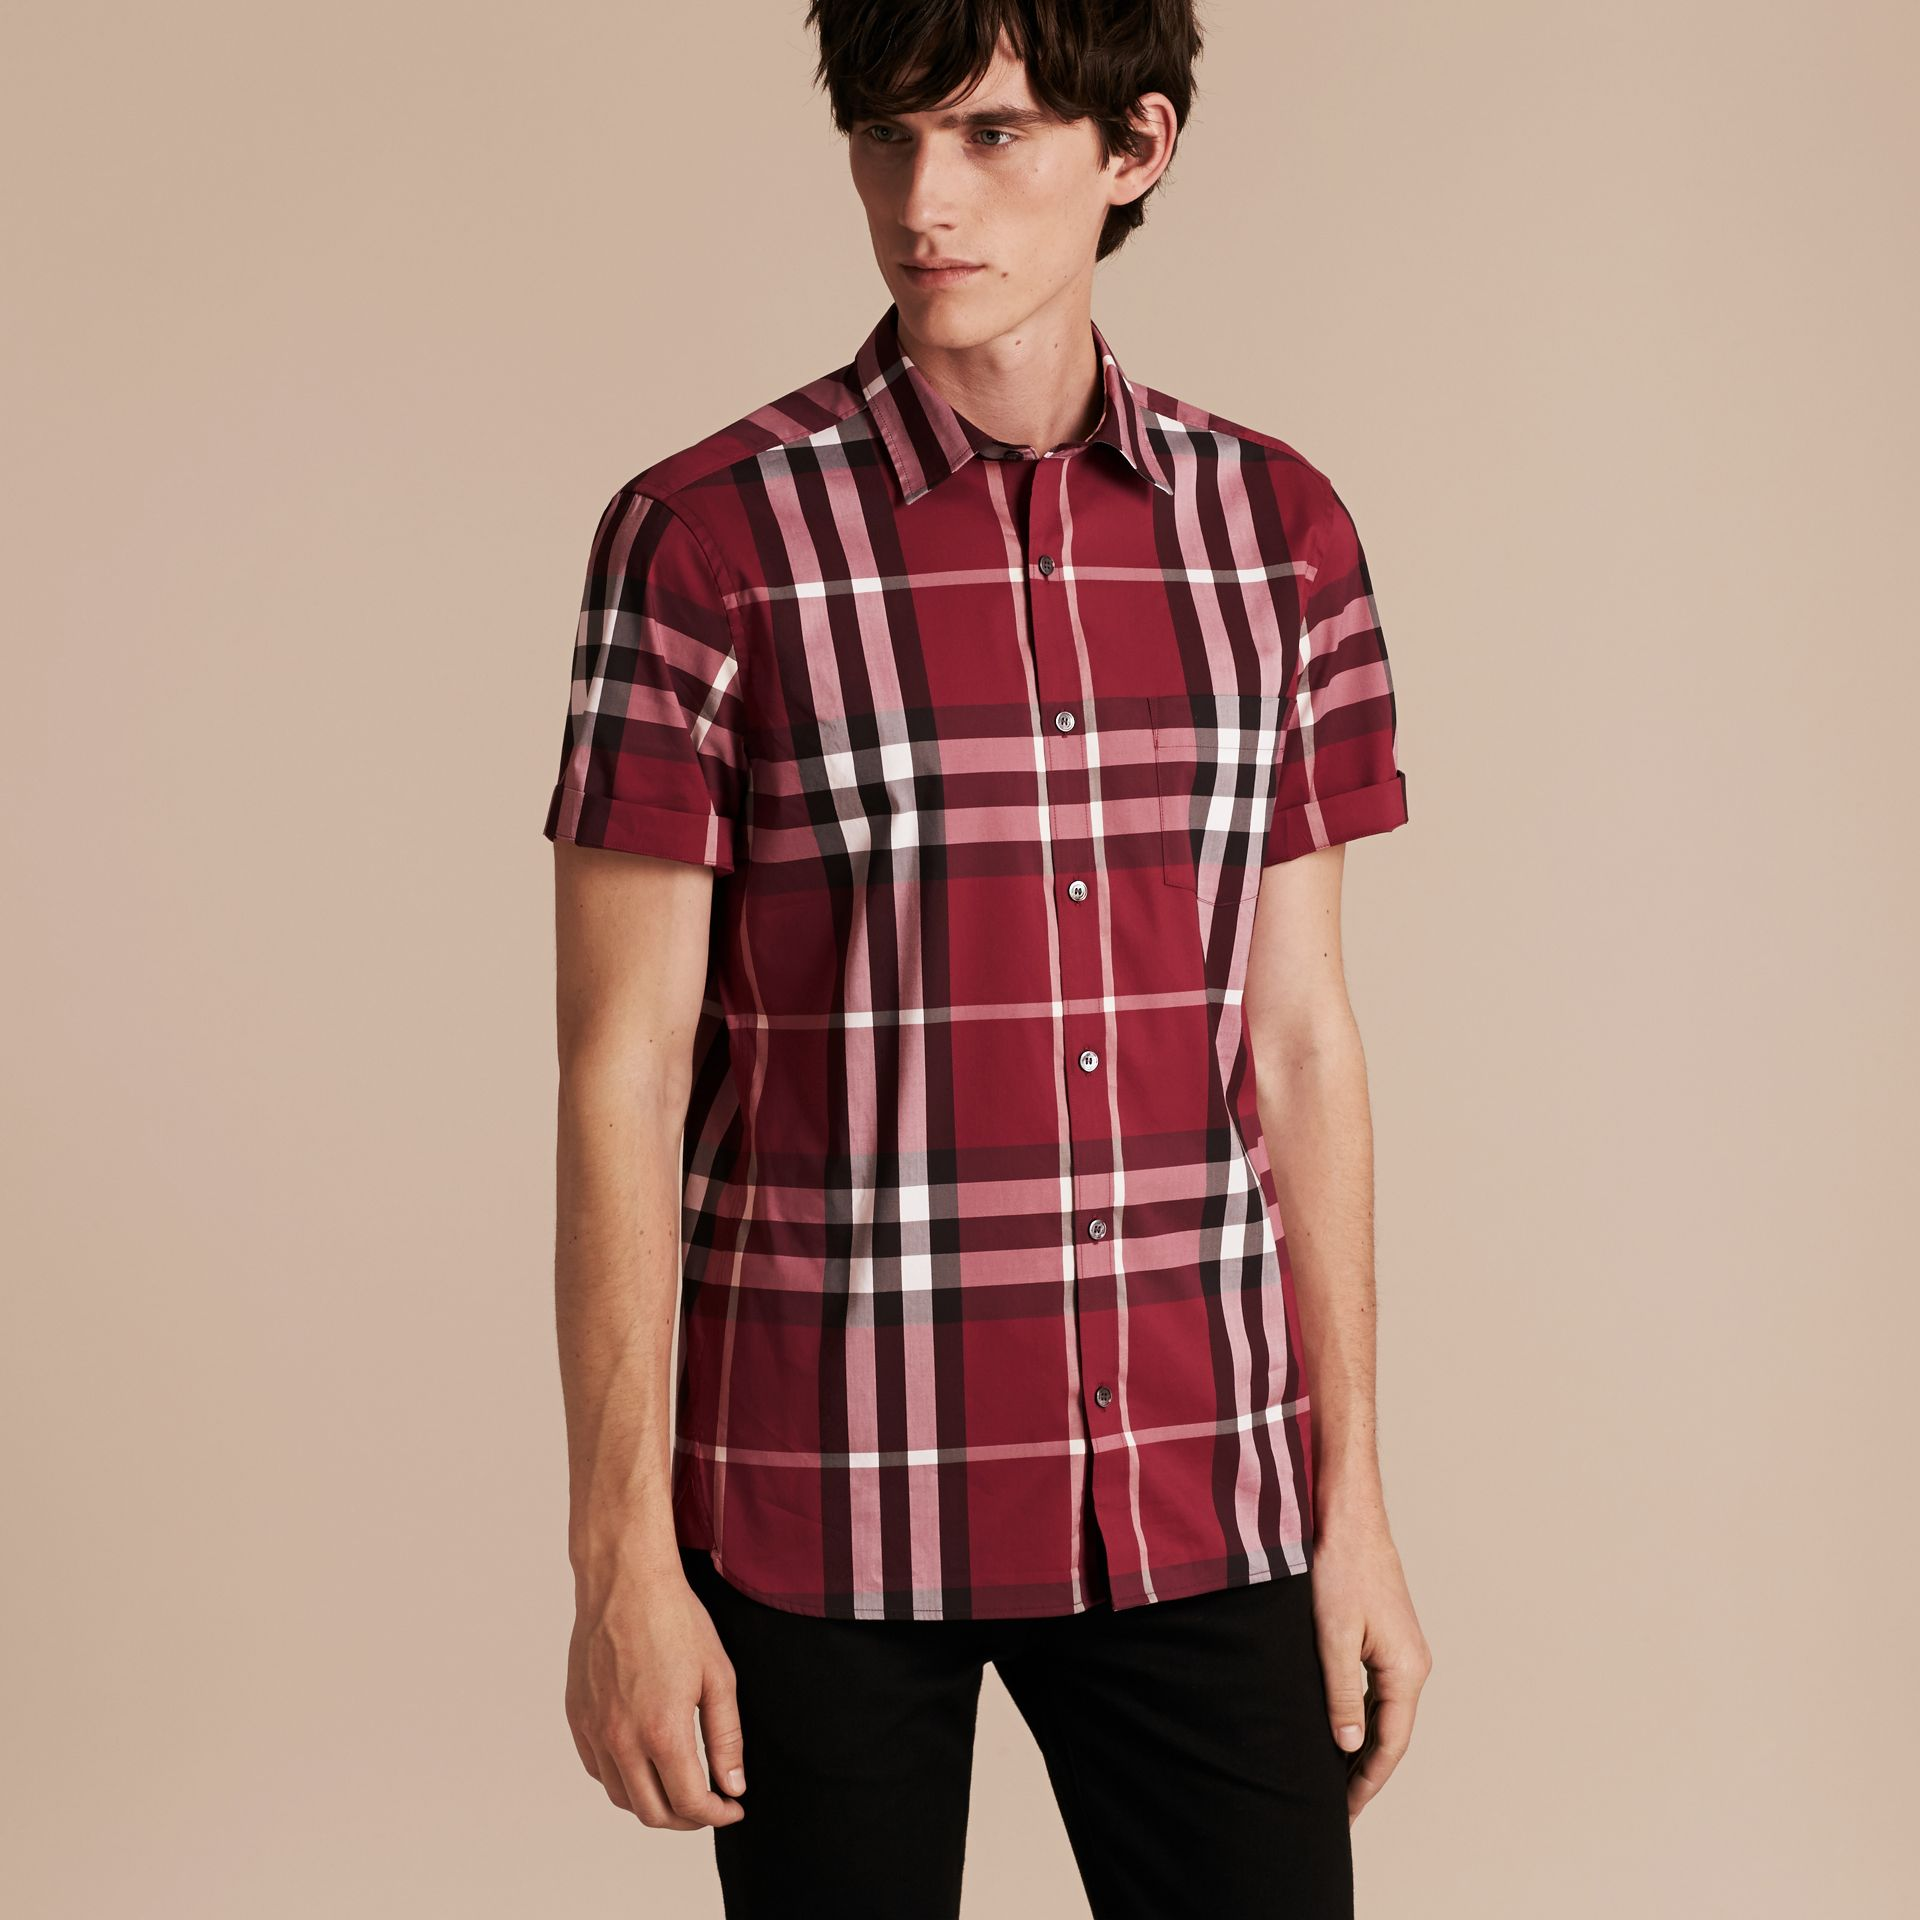 Short-sleeved Check Stretch Cotton Shirt in Plum Pink - Men | Burberry - gallery image 6